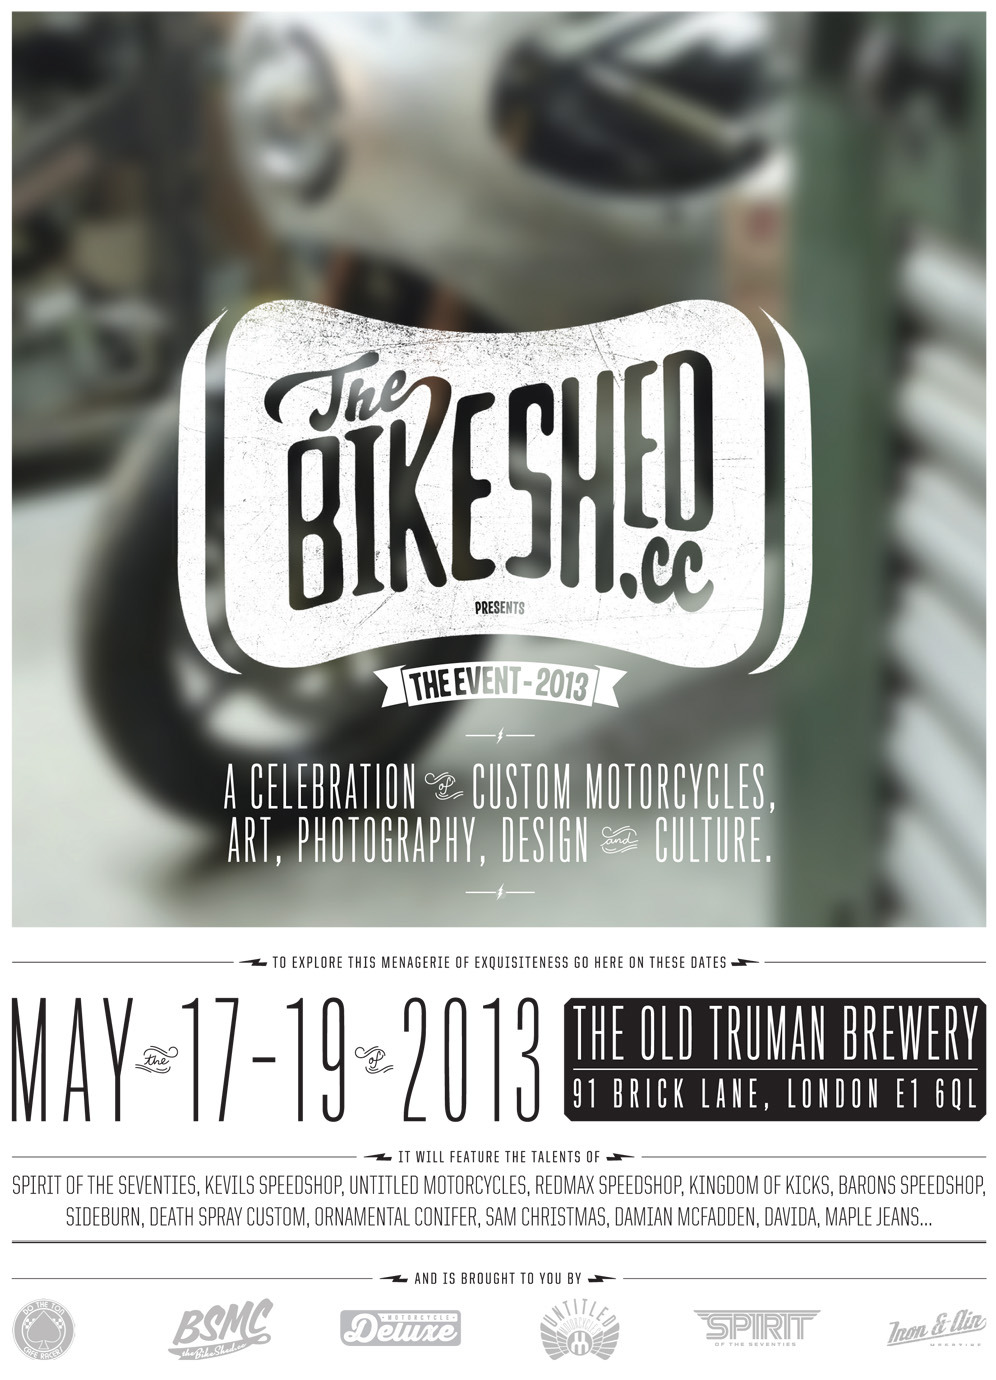 Sounds like we'll be on the road for some fun ! http://thebikeshed.cc/2013/03/18/bsmc-2013/